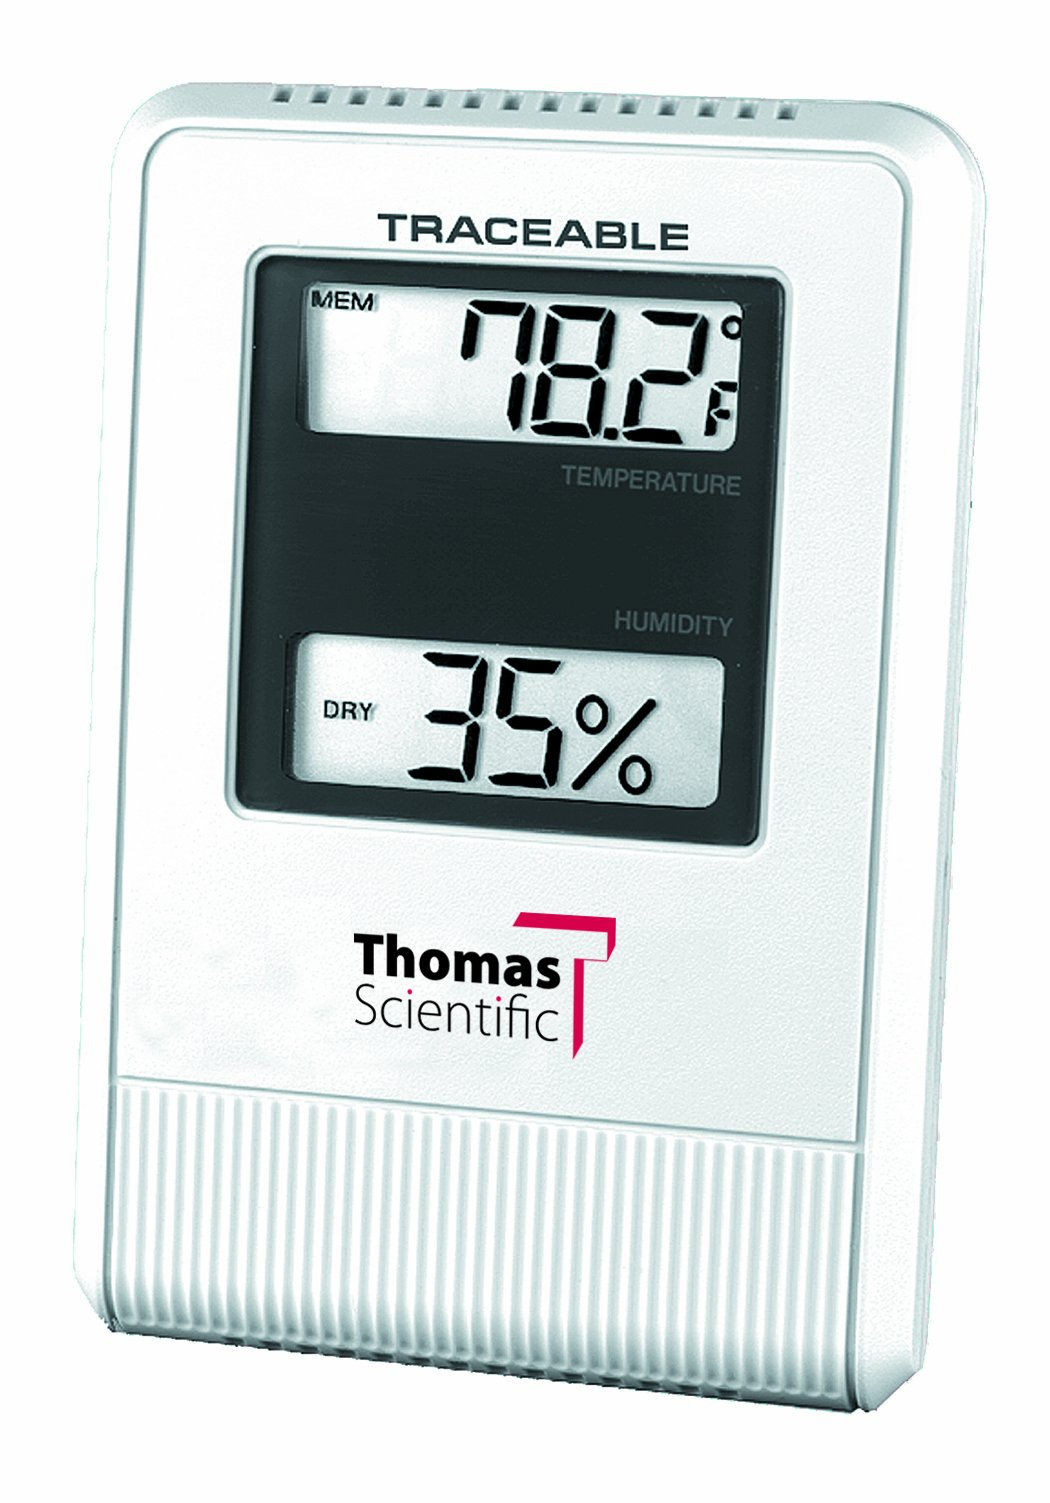 Thomas ABS Plastic Traceable Hygrometer/ Thermometer, with 1/2'' High 2 Line LCD Display, -58 to 158 degree F, -50 to 70 degree C, humidity 25 to 95%